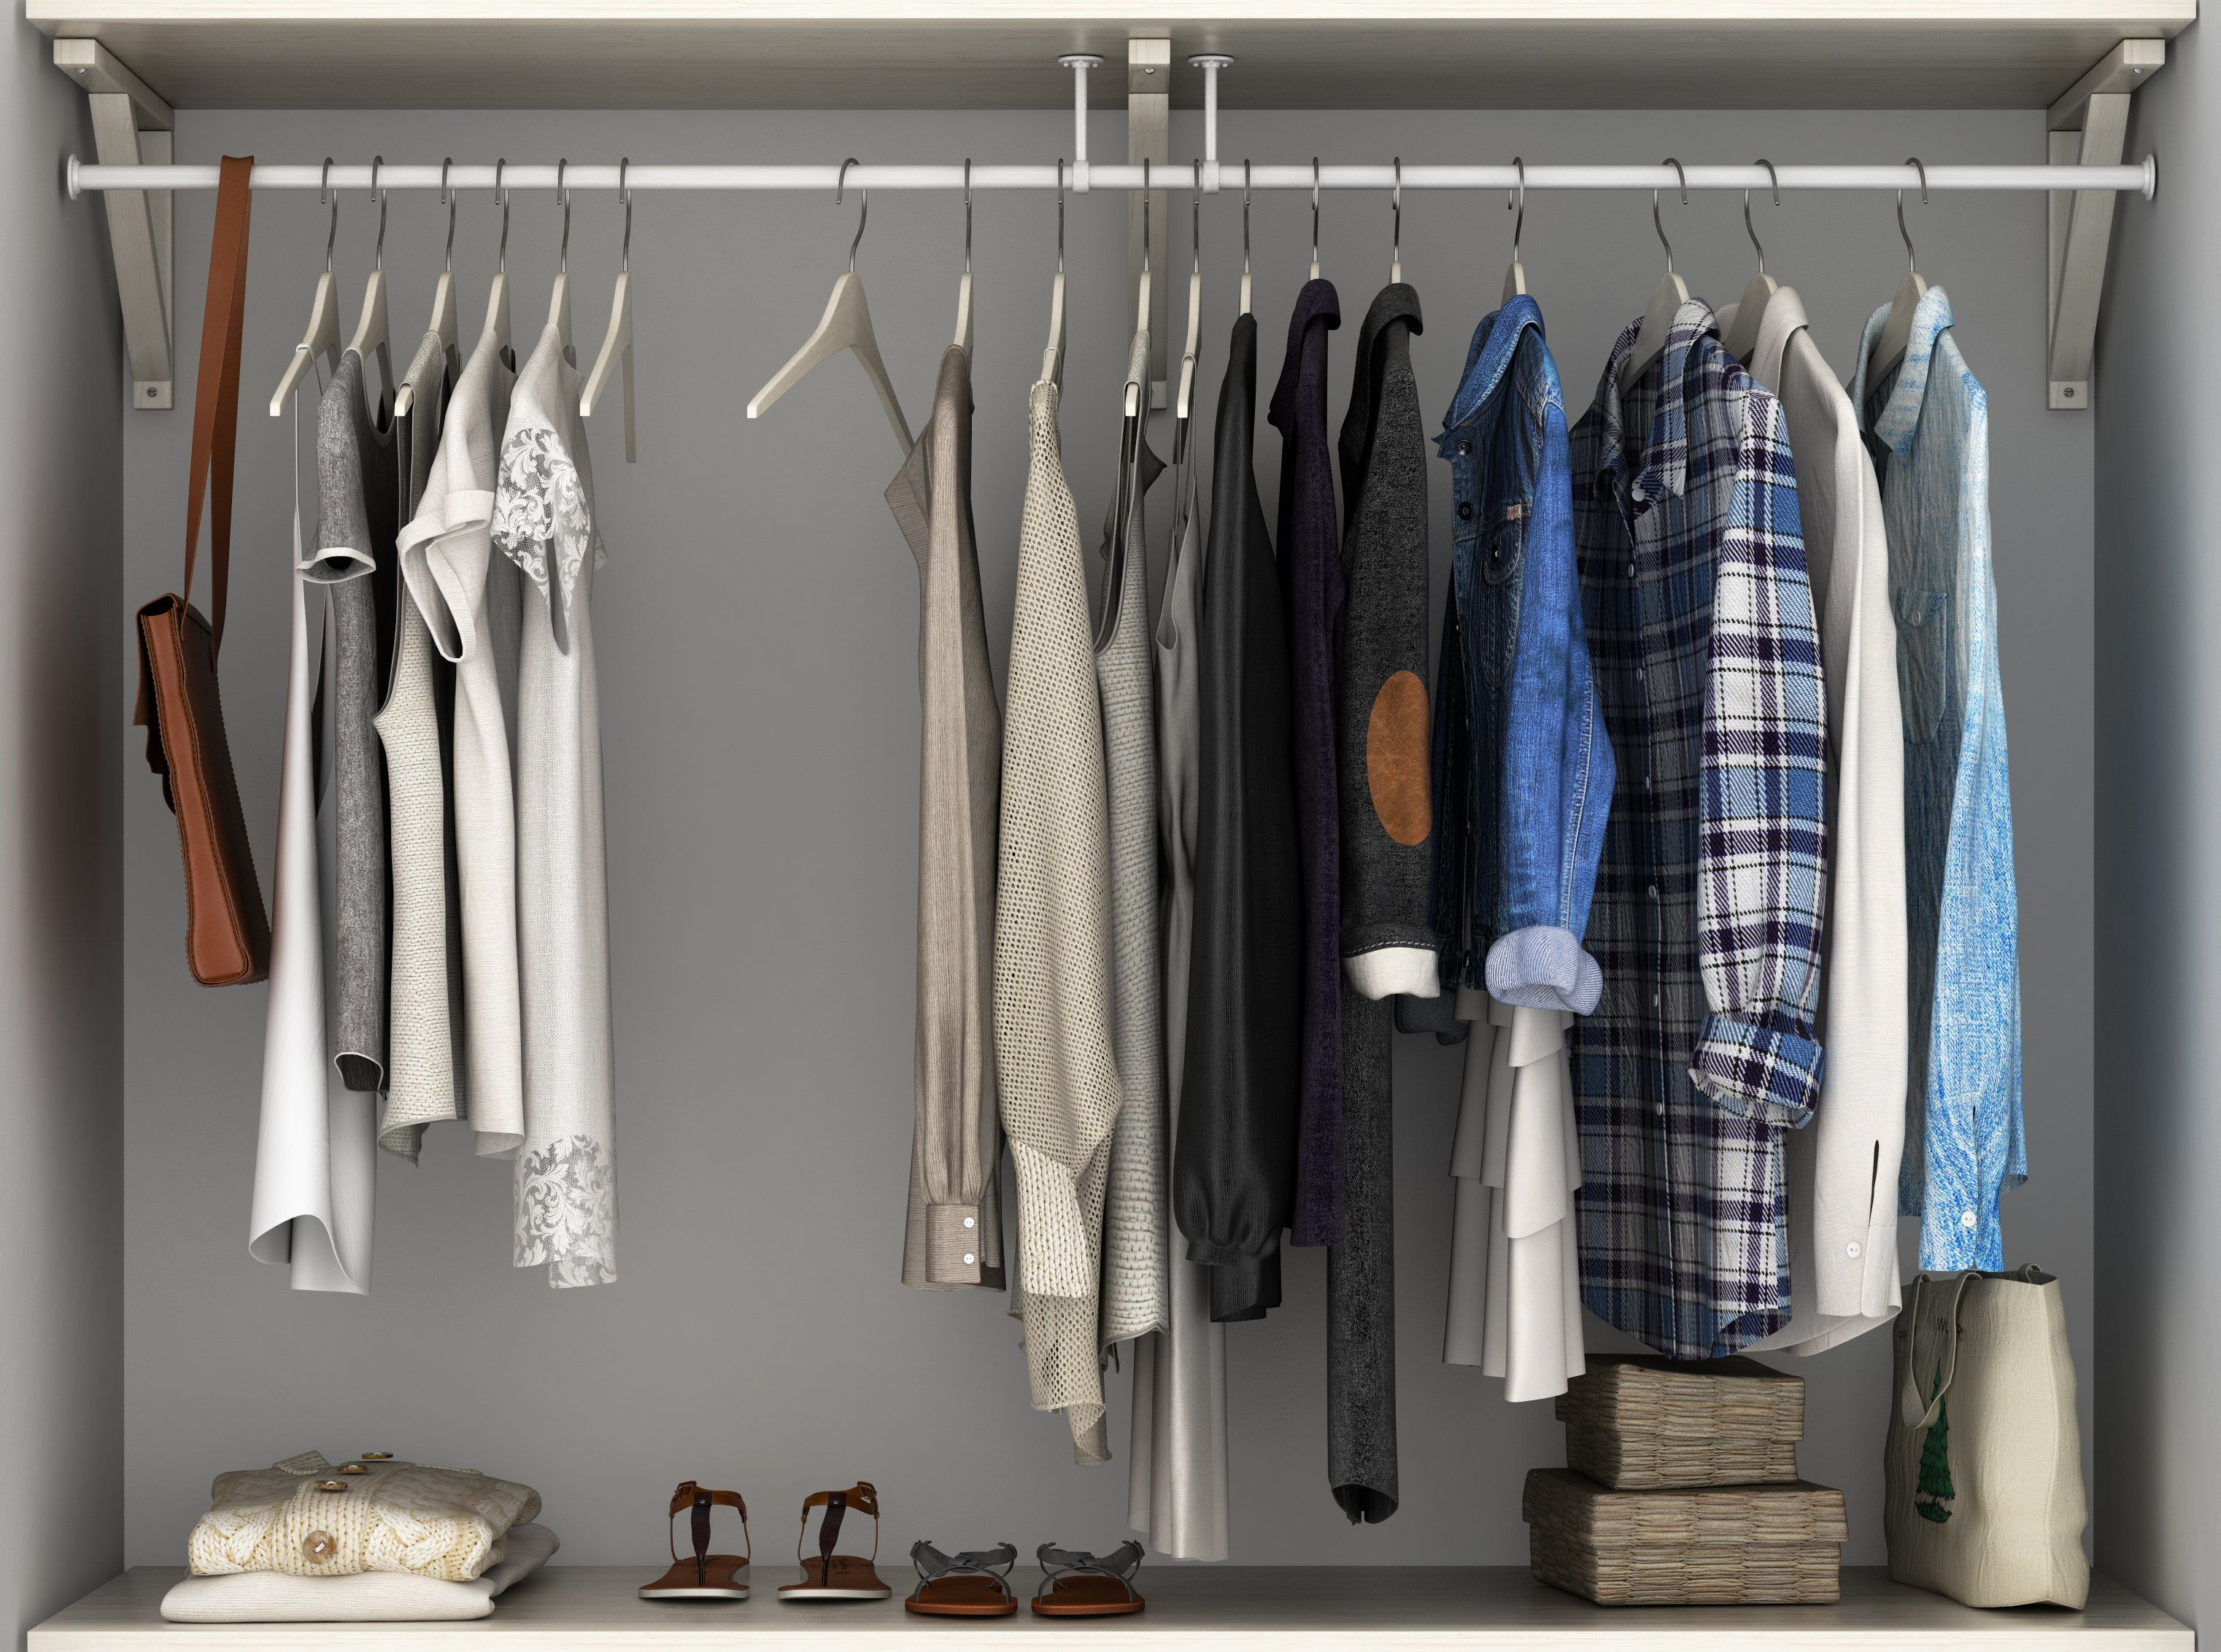 8 Ways To Store Your Clothes Without A Closet | HuffPost Life